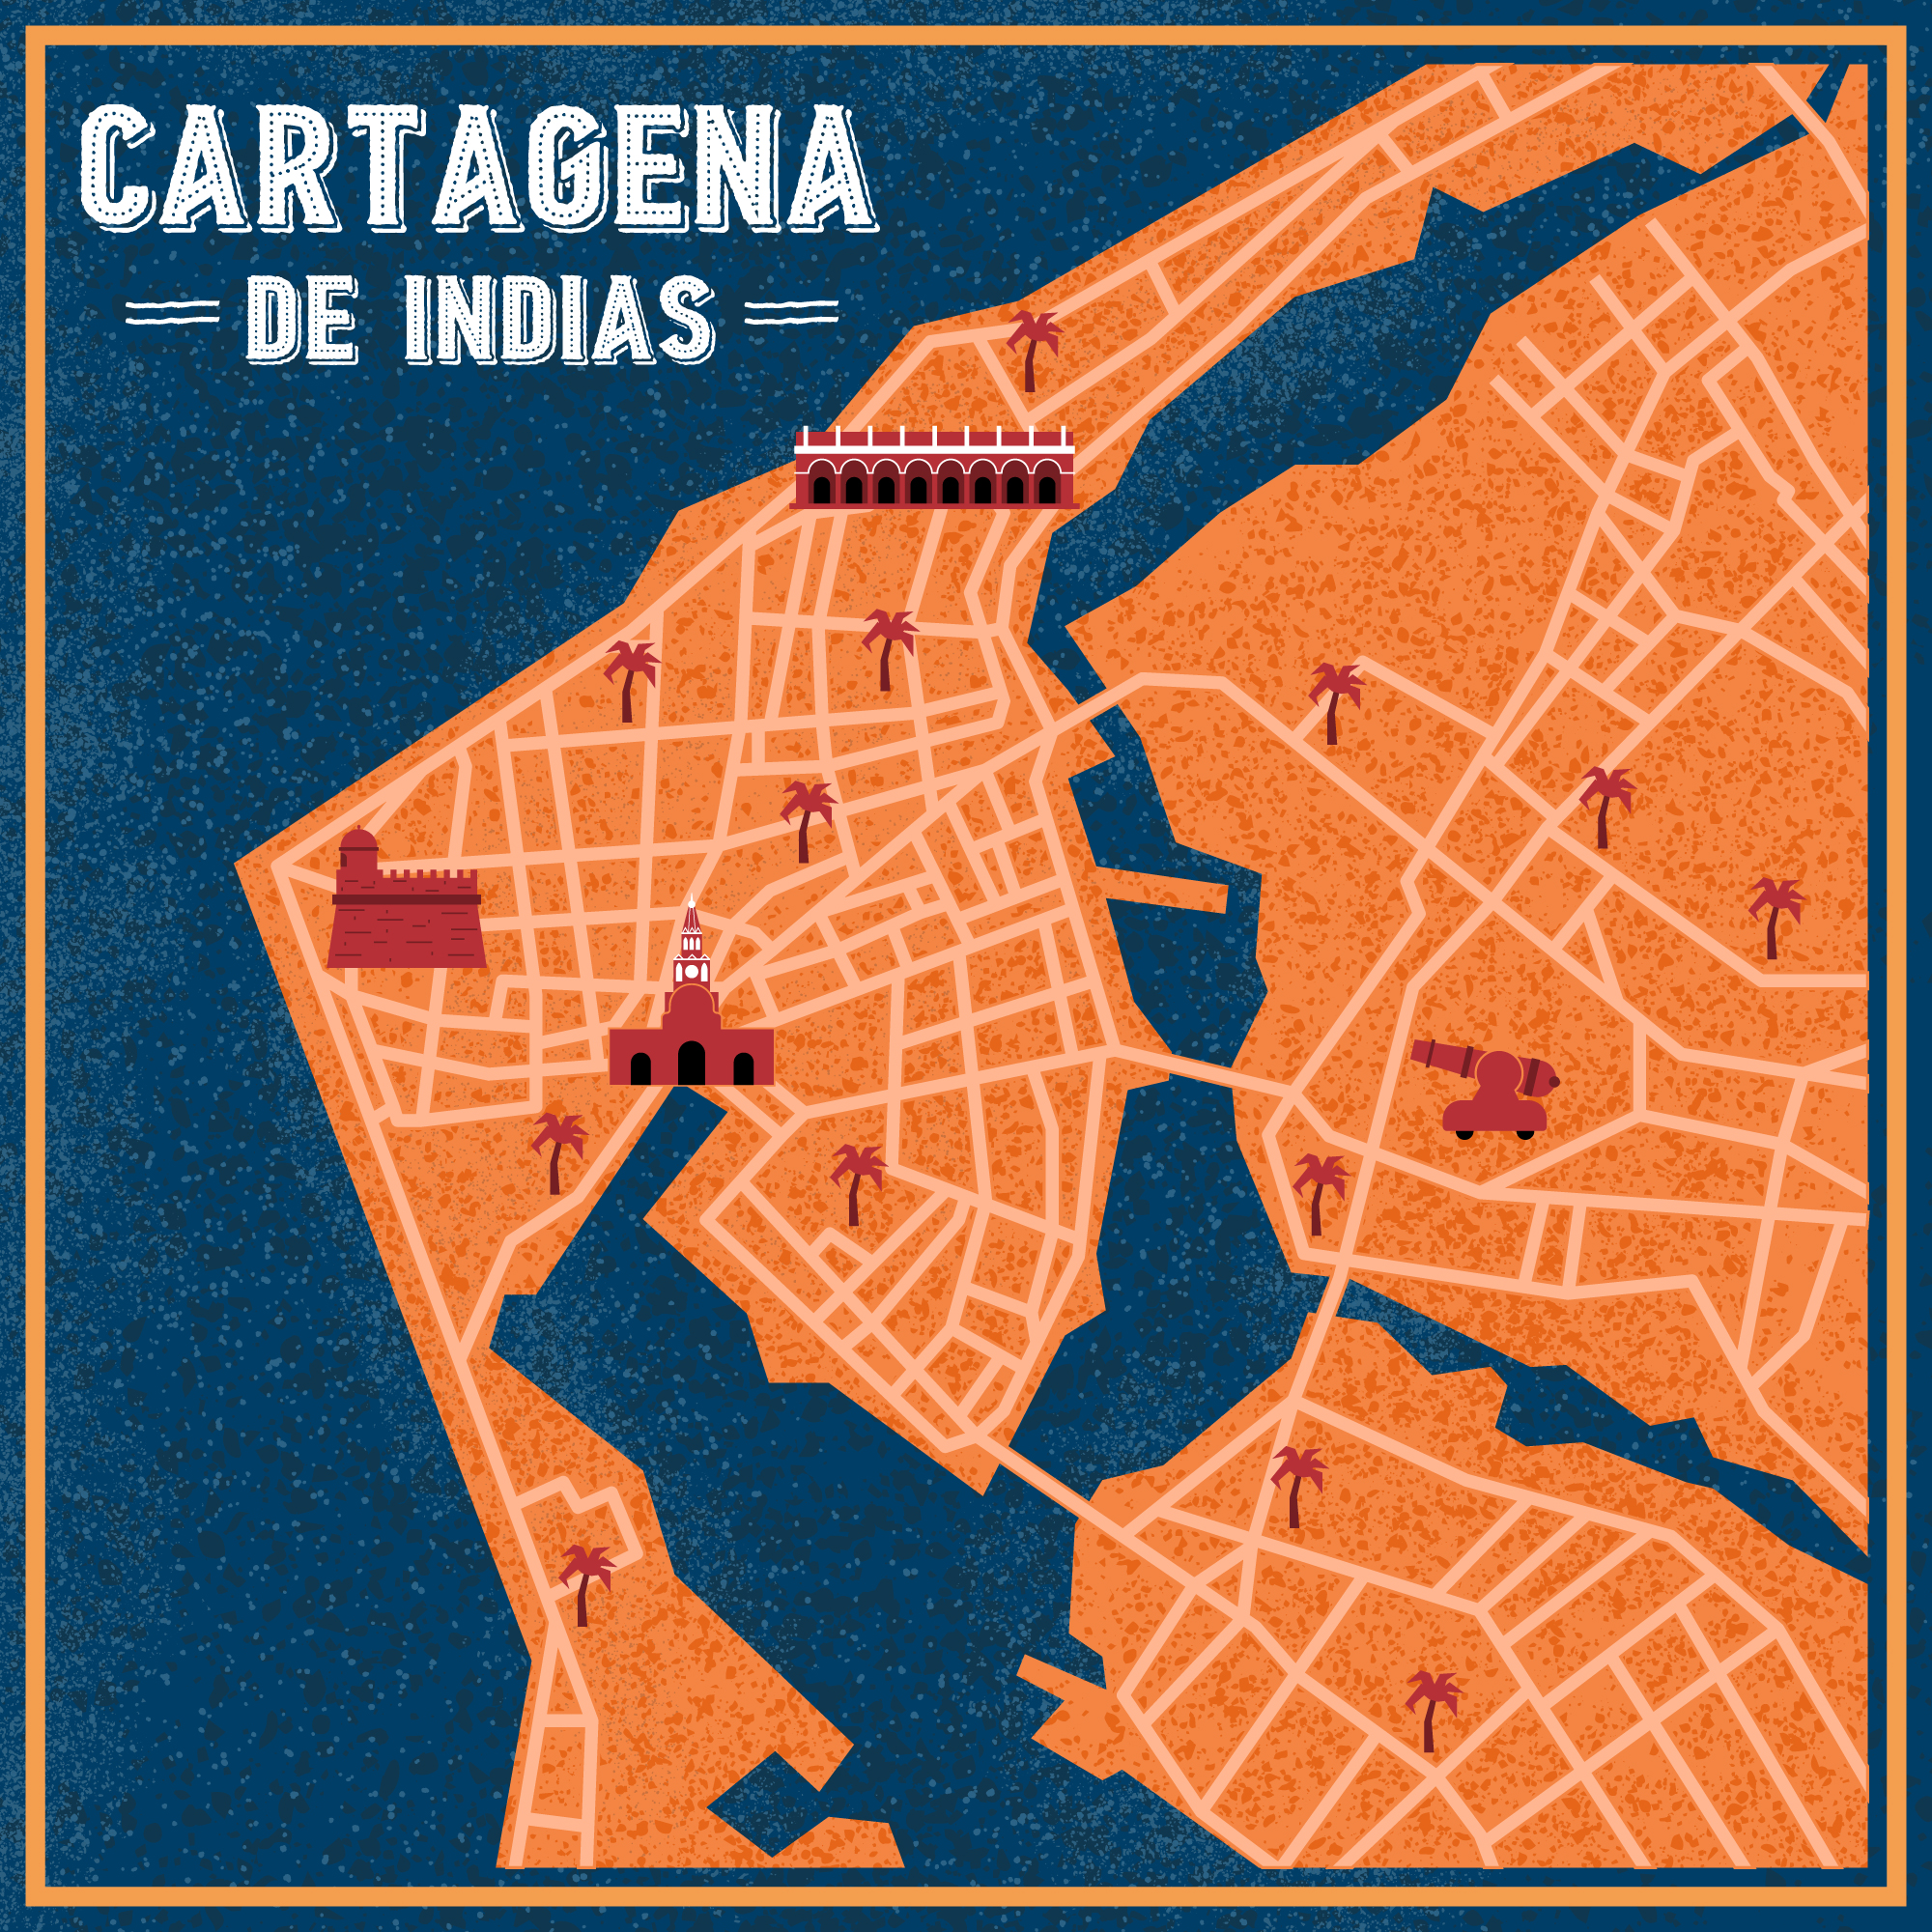 Illustrated city map of Cartagena de Indias